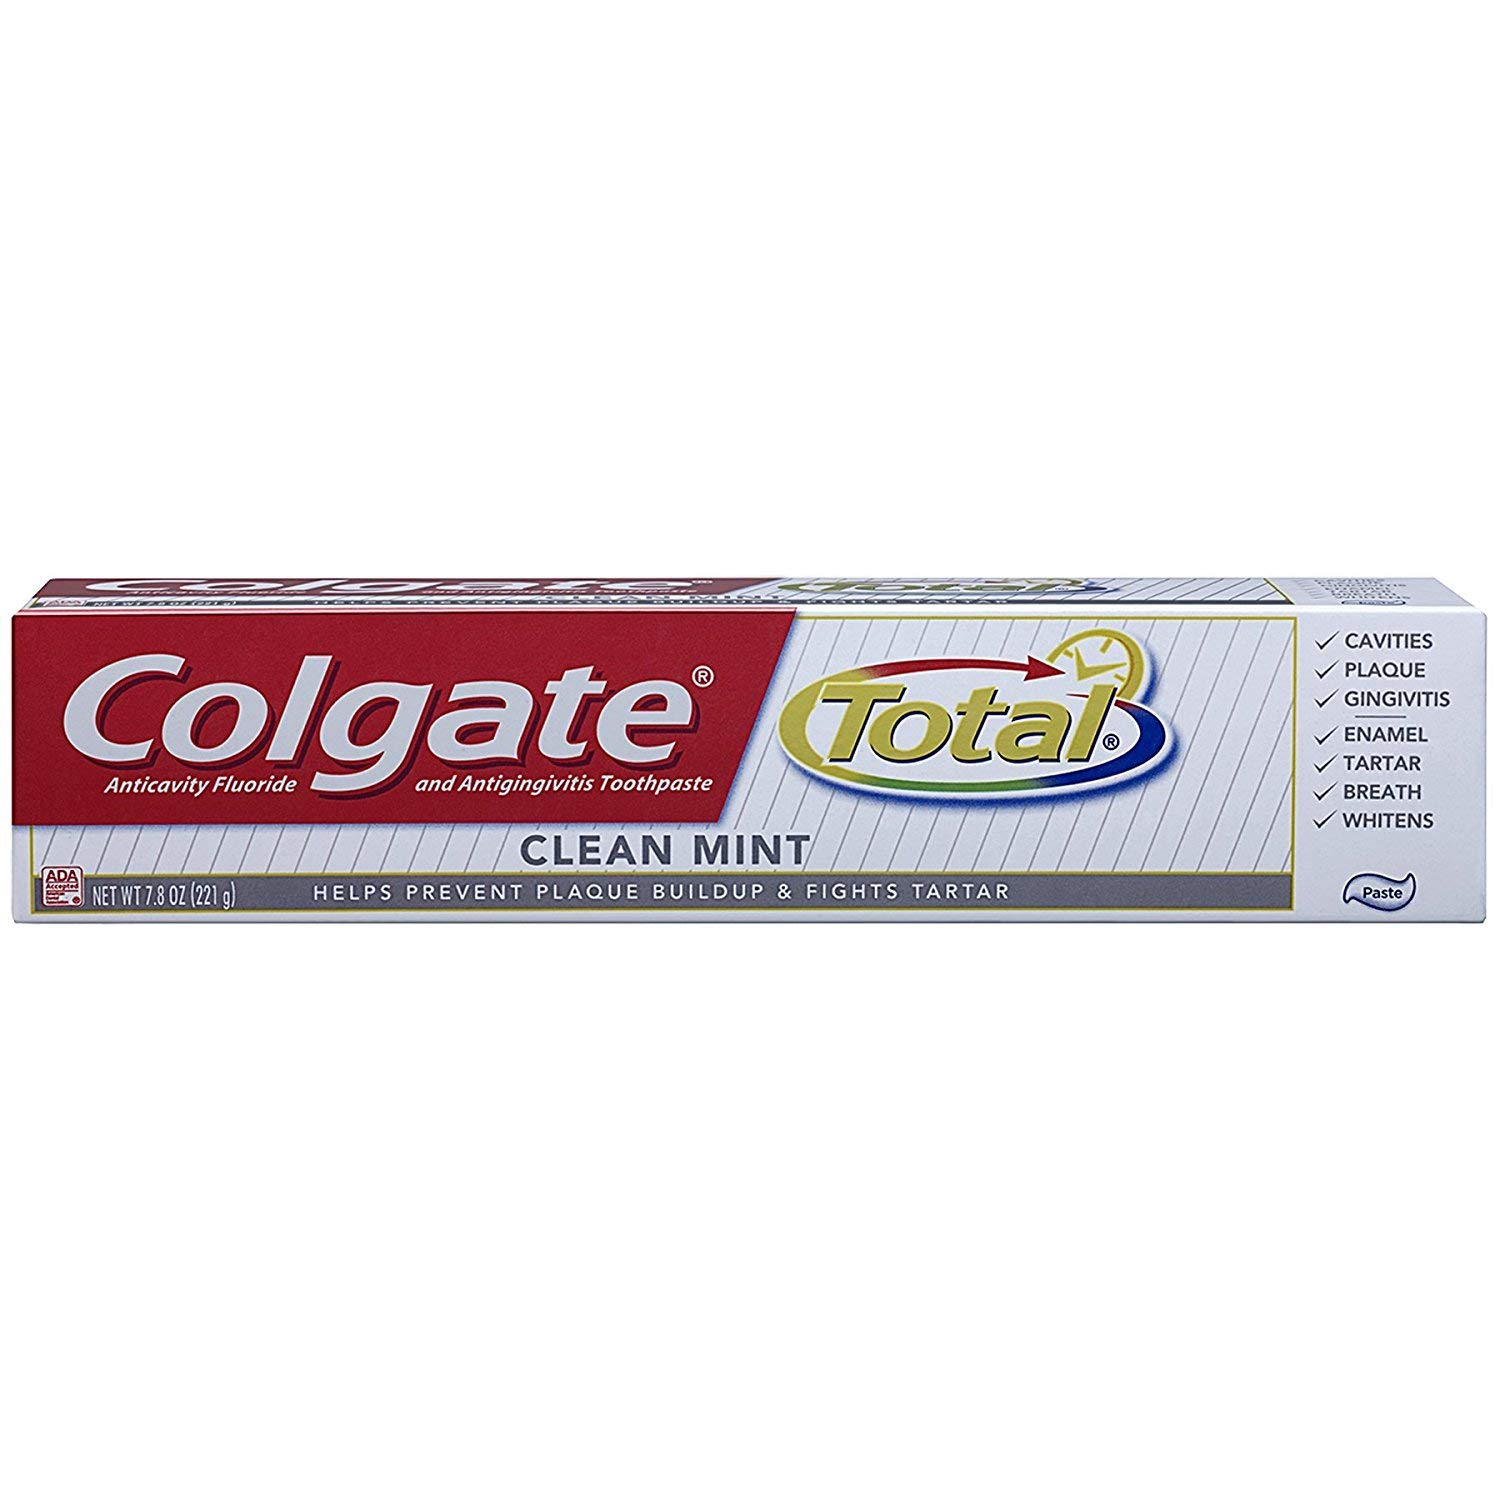 Colgate Total Fluoride Toothpaste Cool Mint, 1.9 oz (Pack of 9) Travel Size TSA Approved